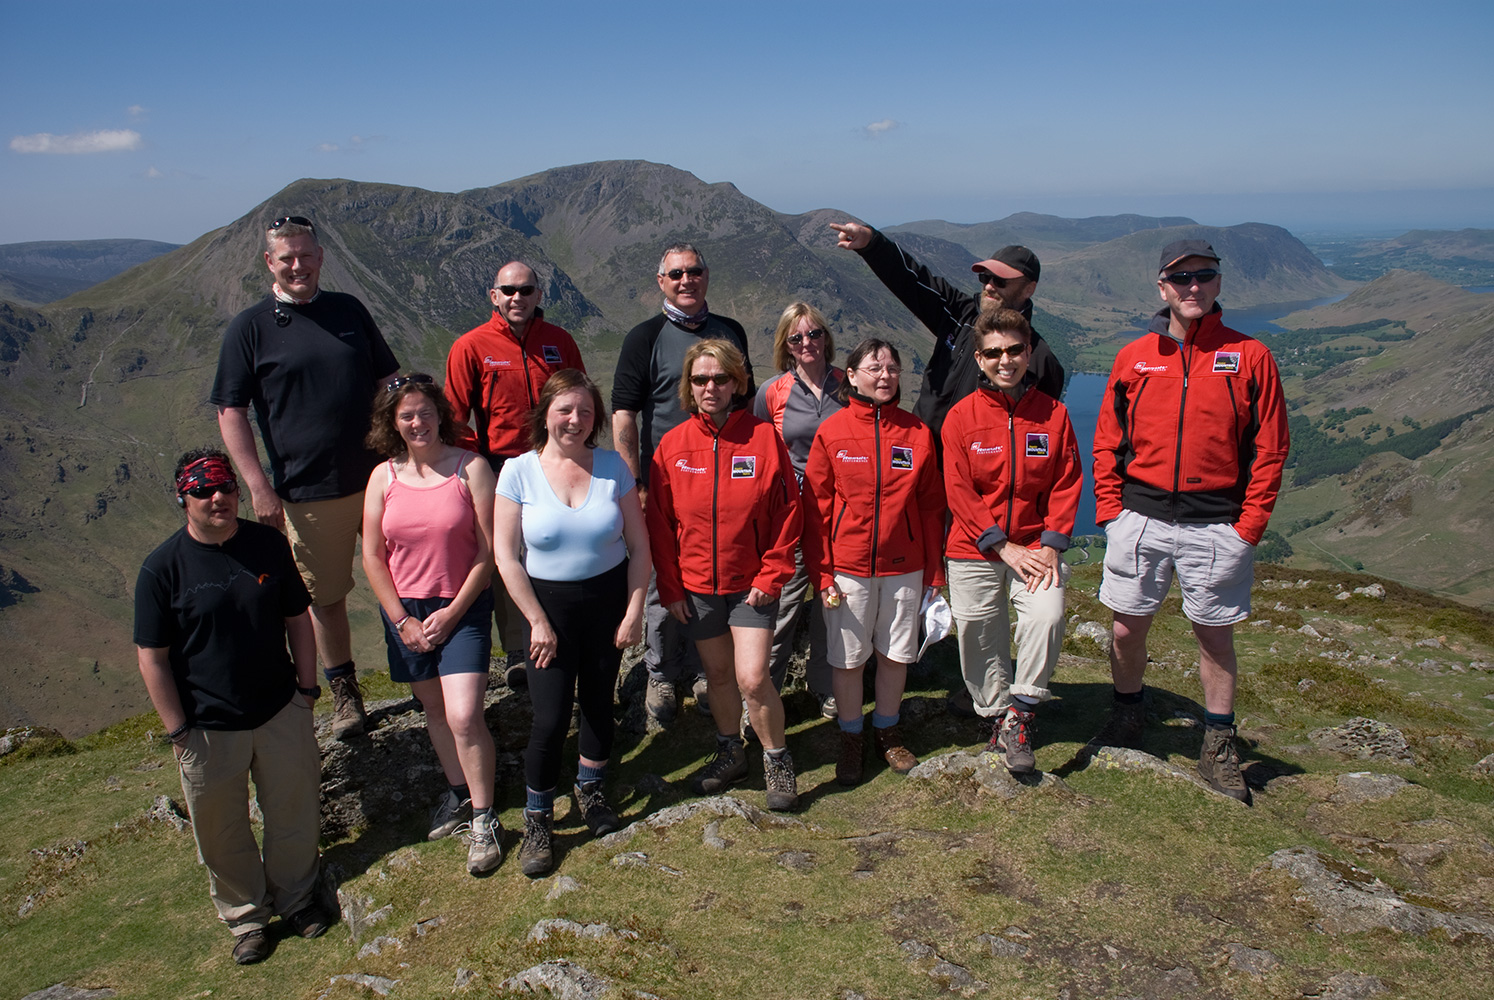 Pete Royall of Wandering Aengus Treks with a group of walkers on Fleetwith Pike looking over Buttermere.